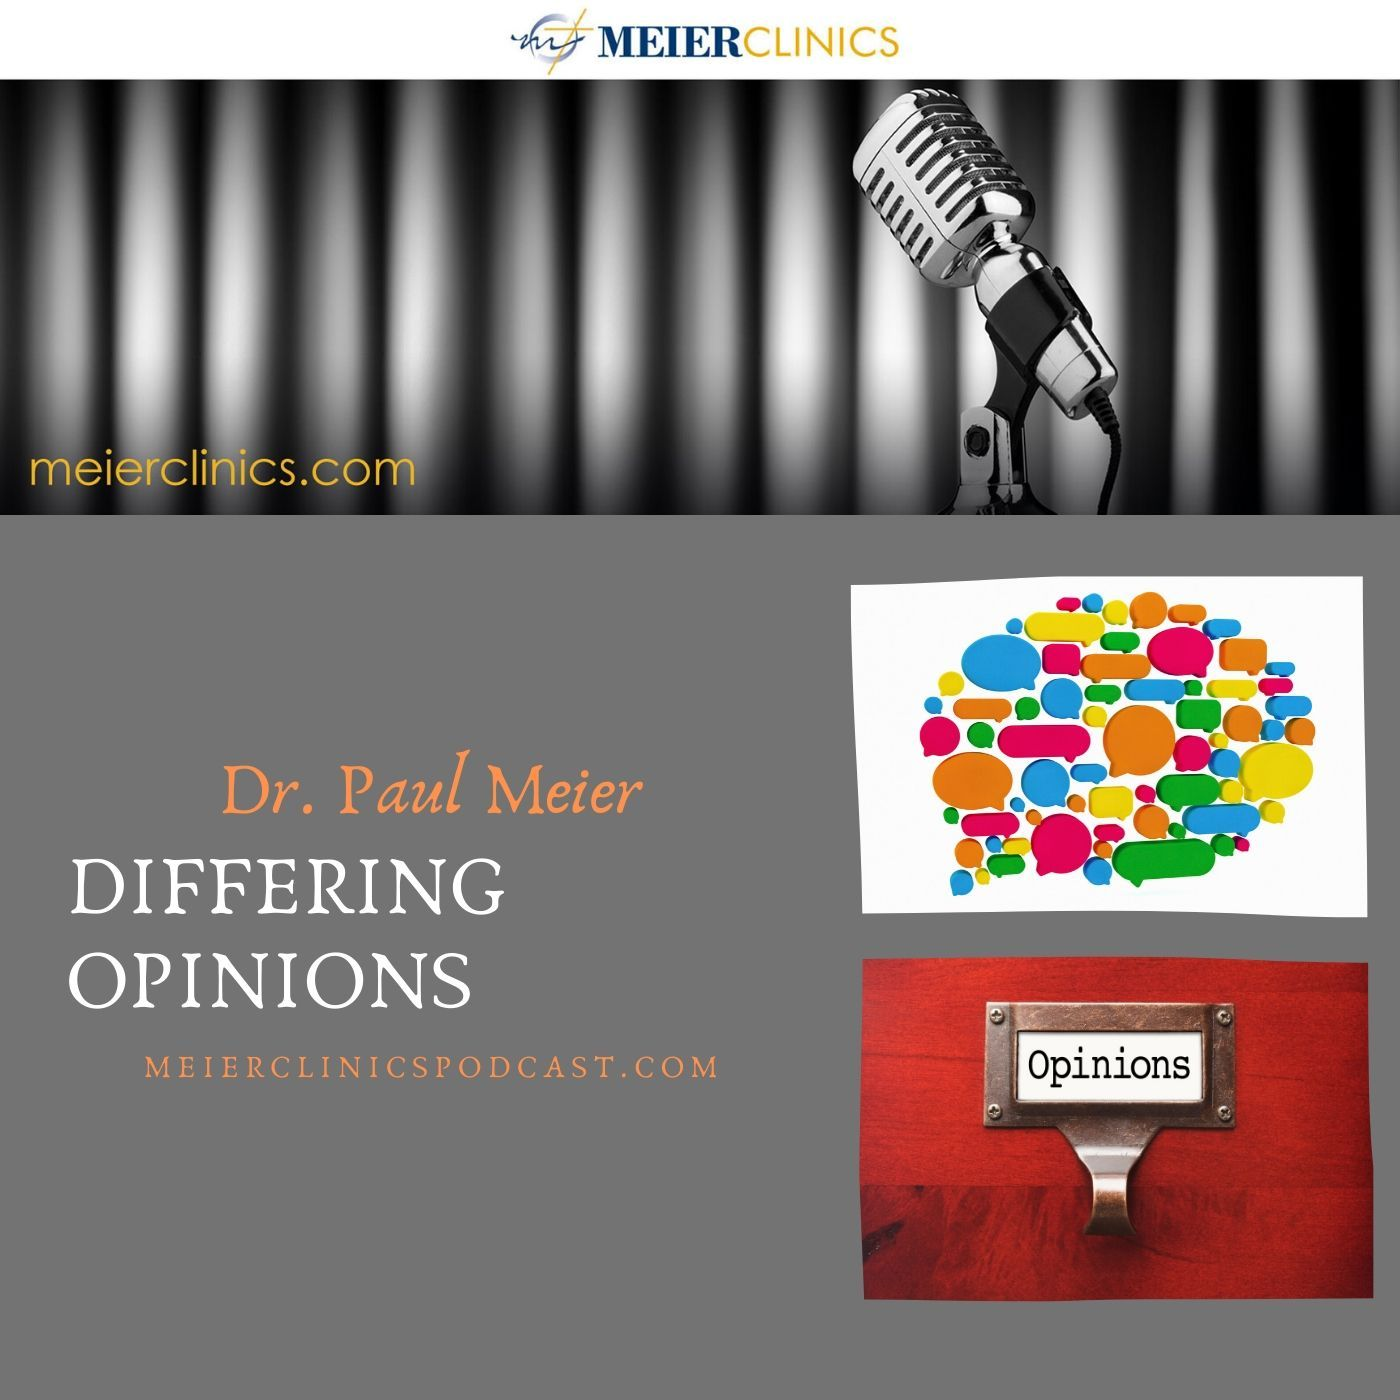 Differing Opinions with Dr. Paul Meier